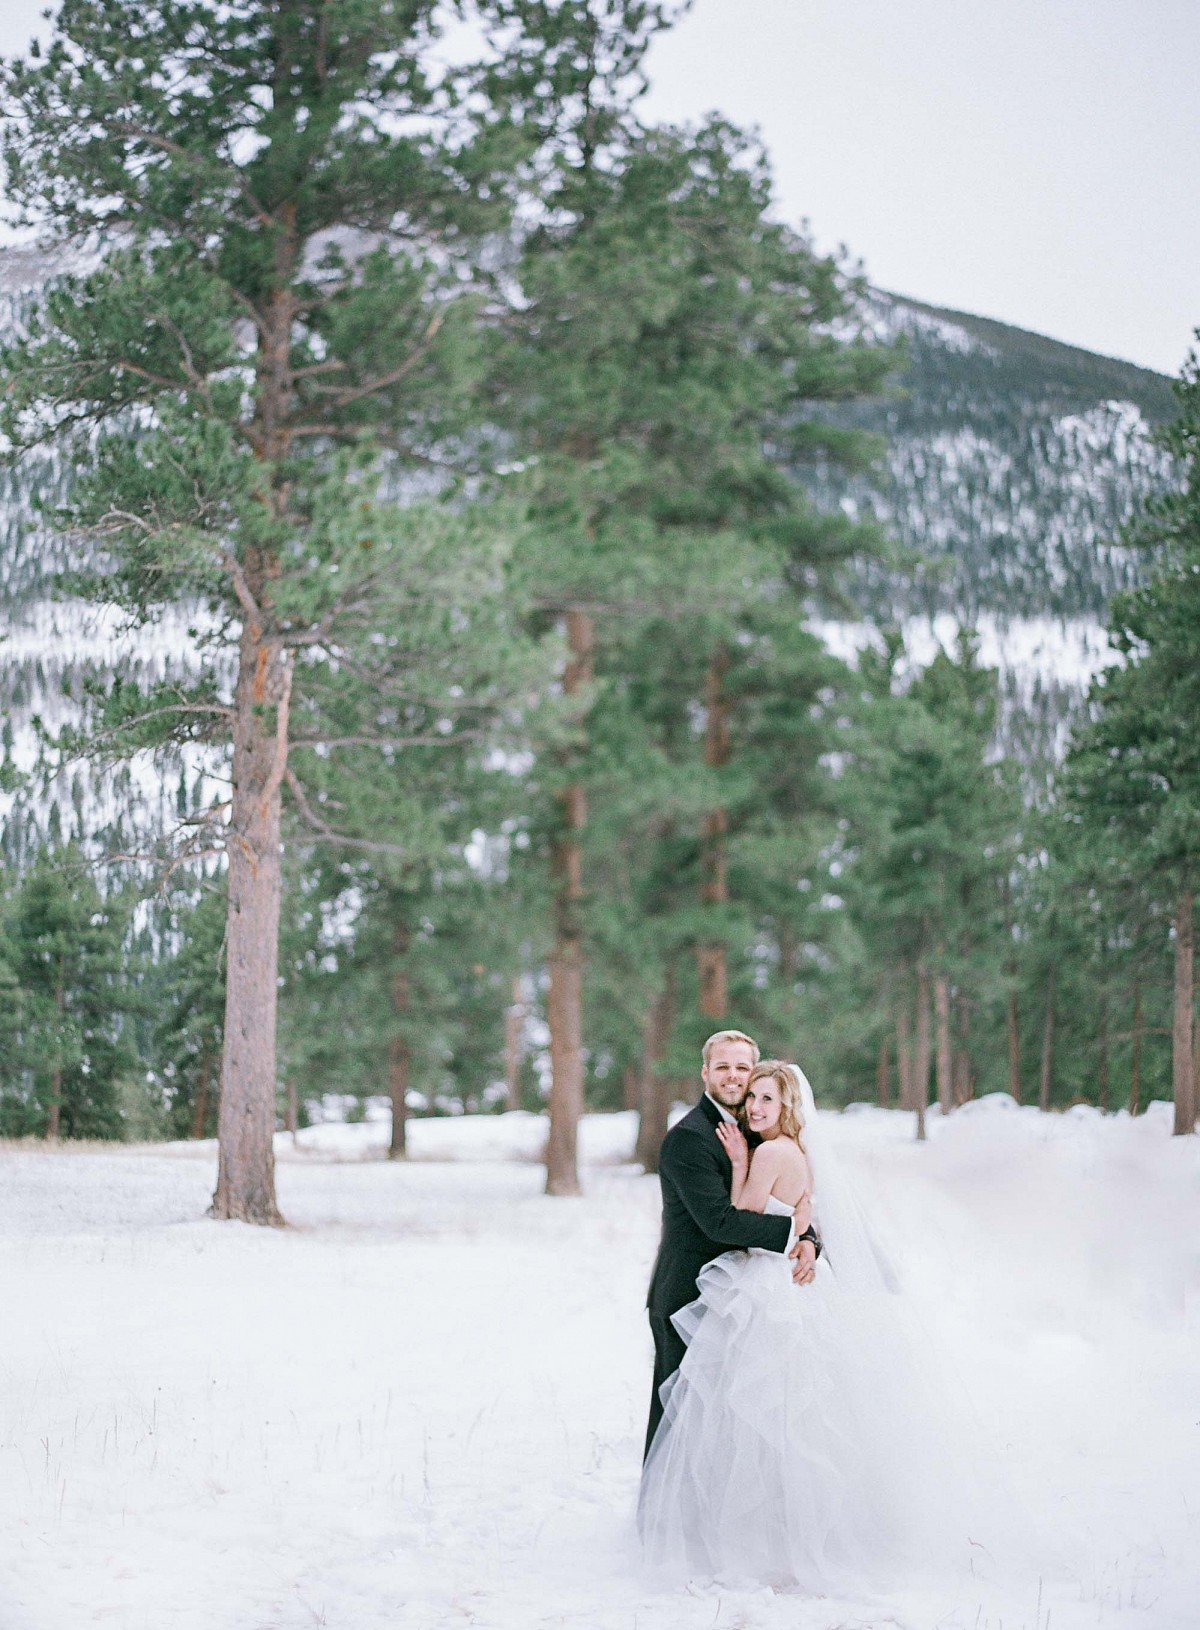 Kendall and Grant's Snowy Winter Wedding